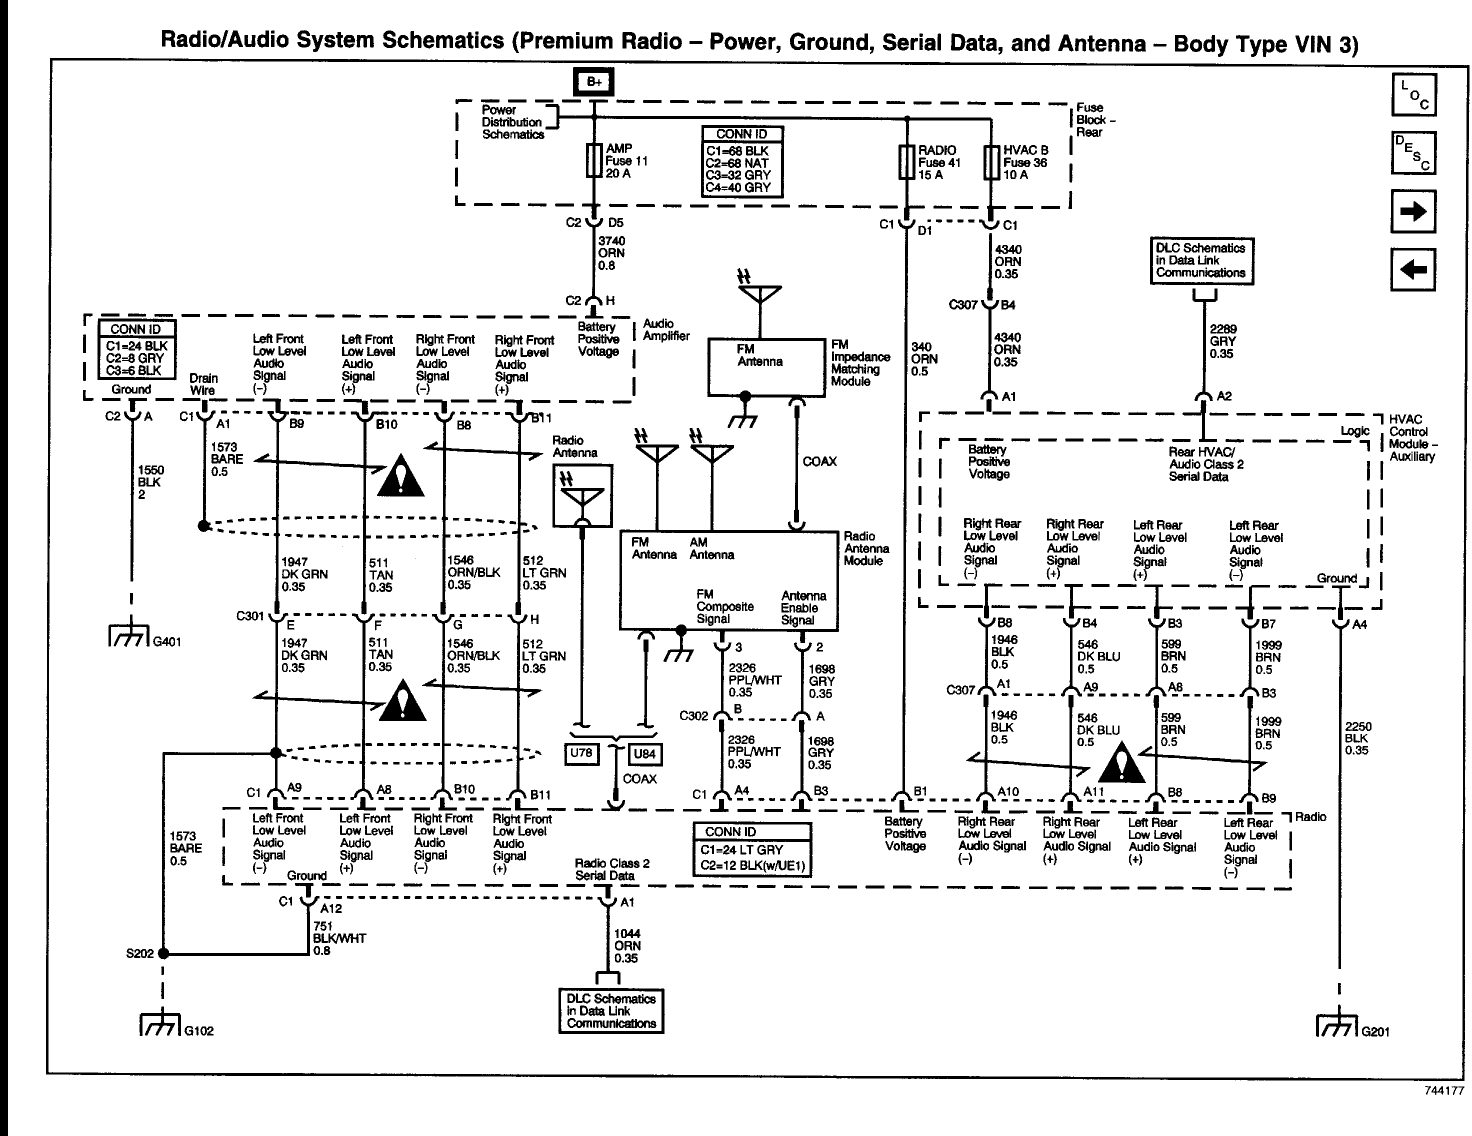 wiring diagram for 1991 gmc sierra radio wiring diagram for 06 gmc sierra